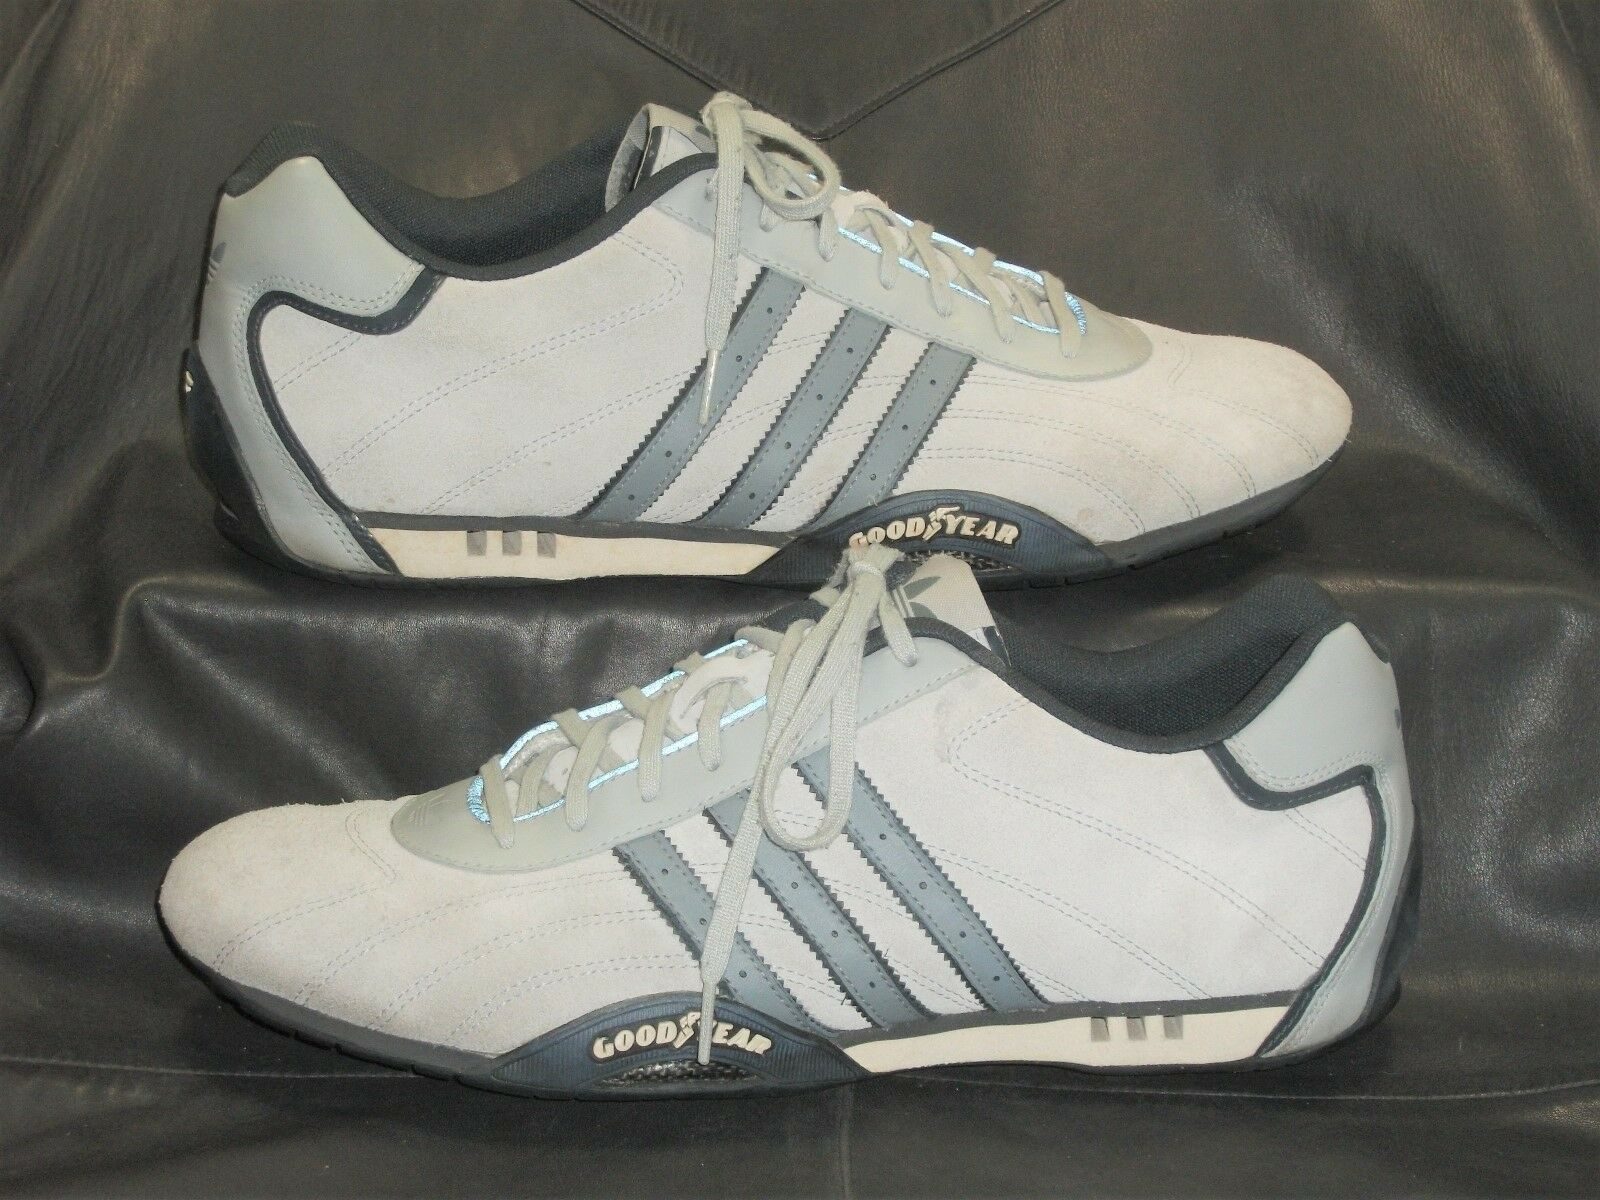 adidas trim mens light Gray suede w/synthetic trim adidas casual athletic oxford size US 13 27298e